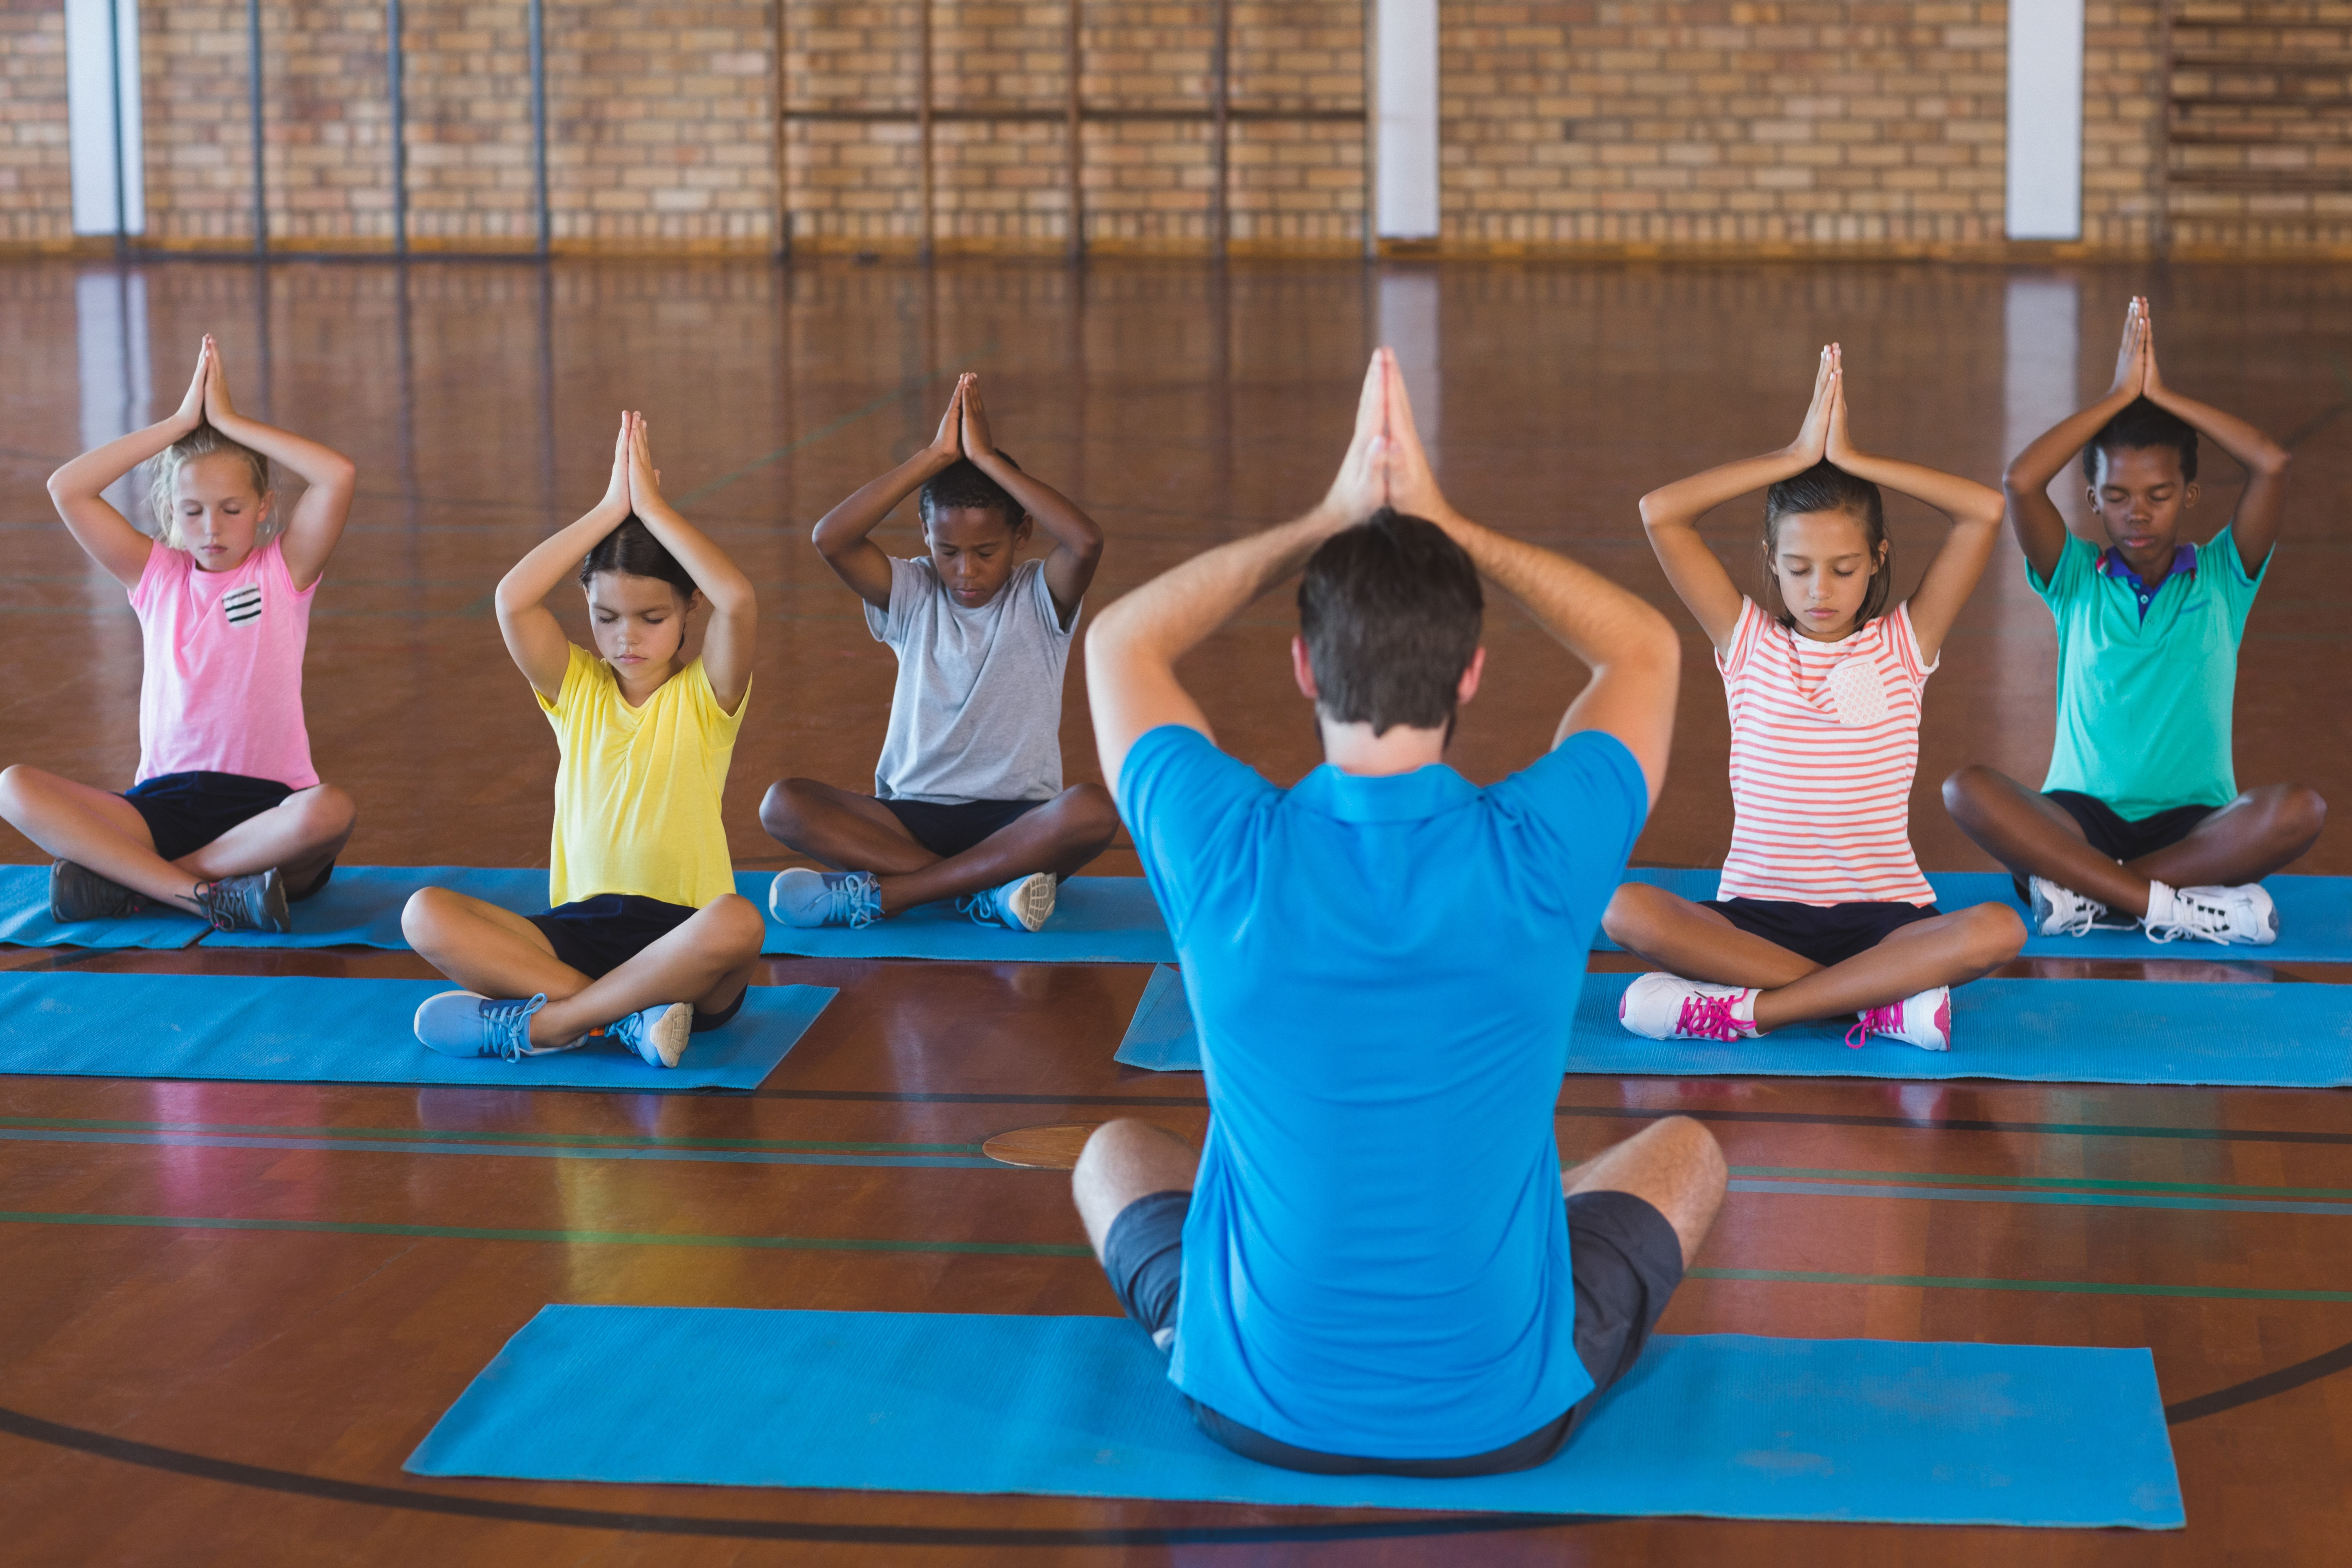 kids practicing yoga at school with teacher to reduce stress and anxiety and develop social skills